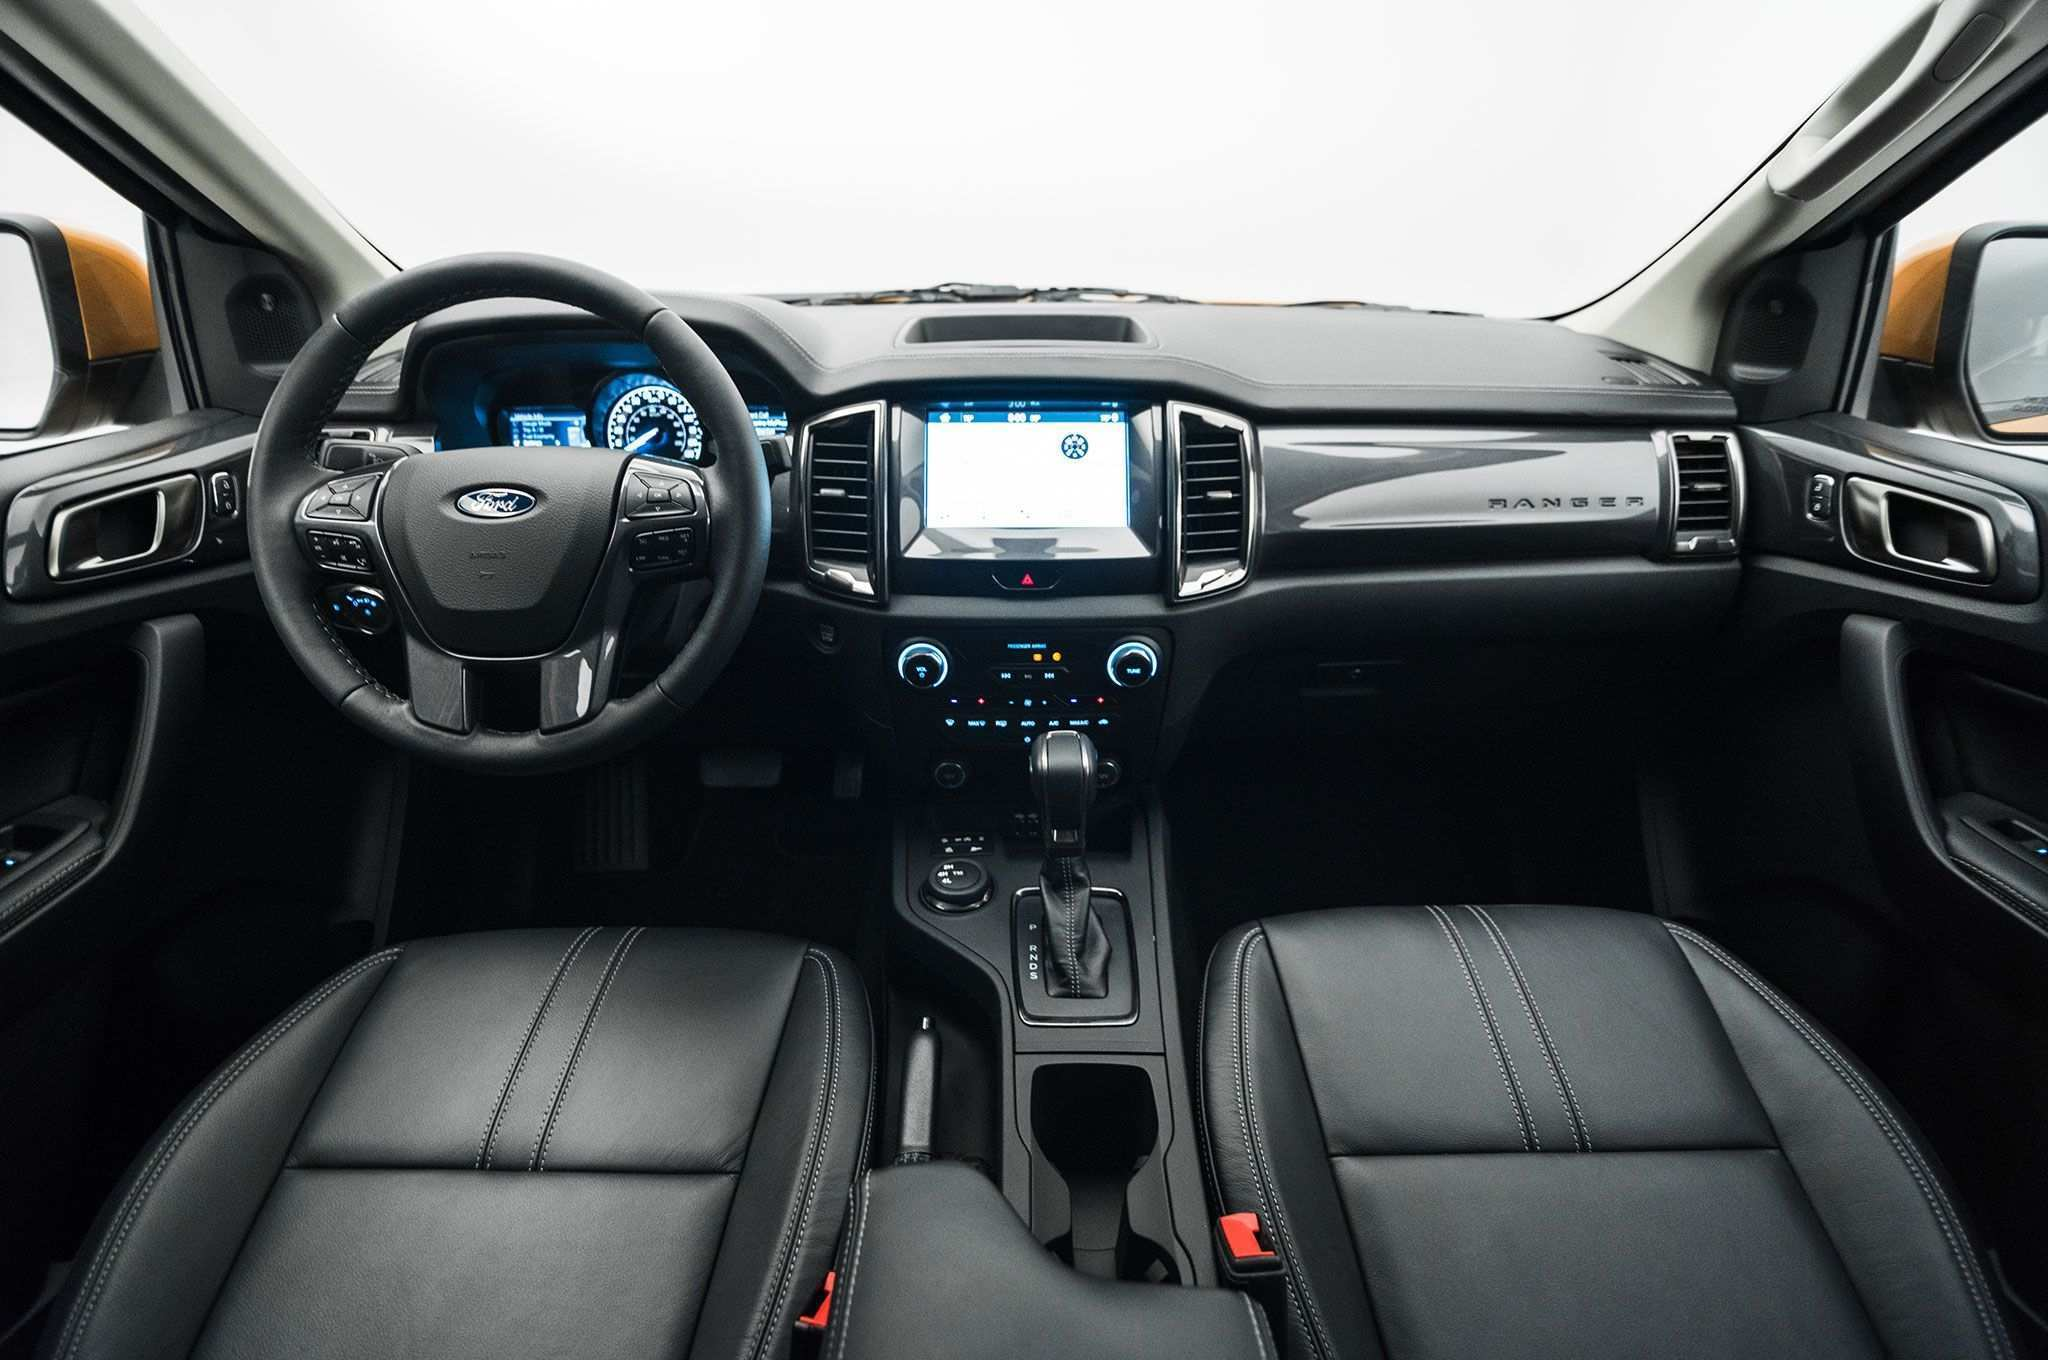 73 Best Review Ford 2019 Interior Picture Release Date And Review Engine by Ford 2019 Interior Picture Release Date And Review